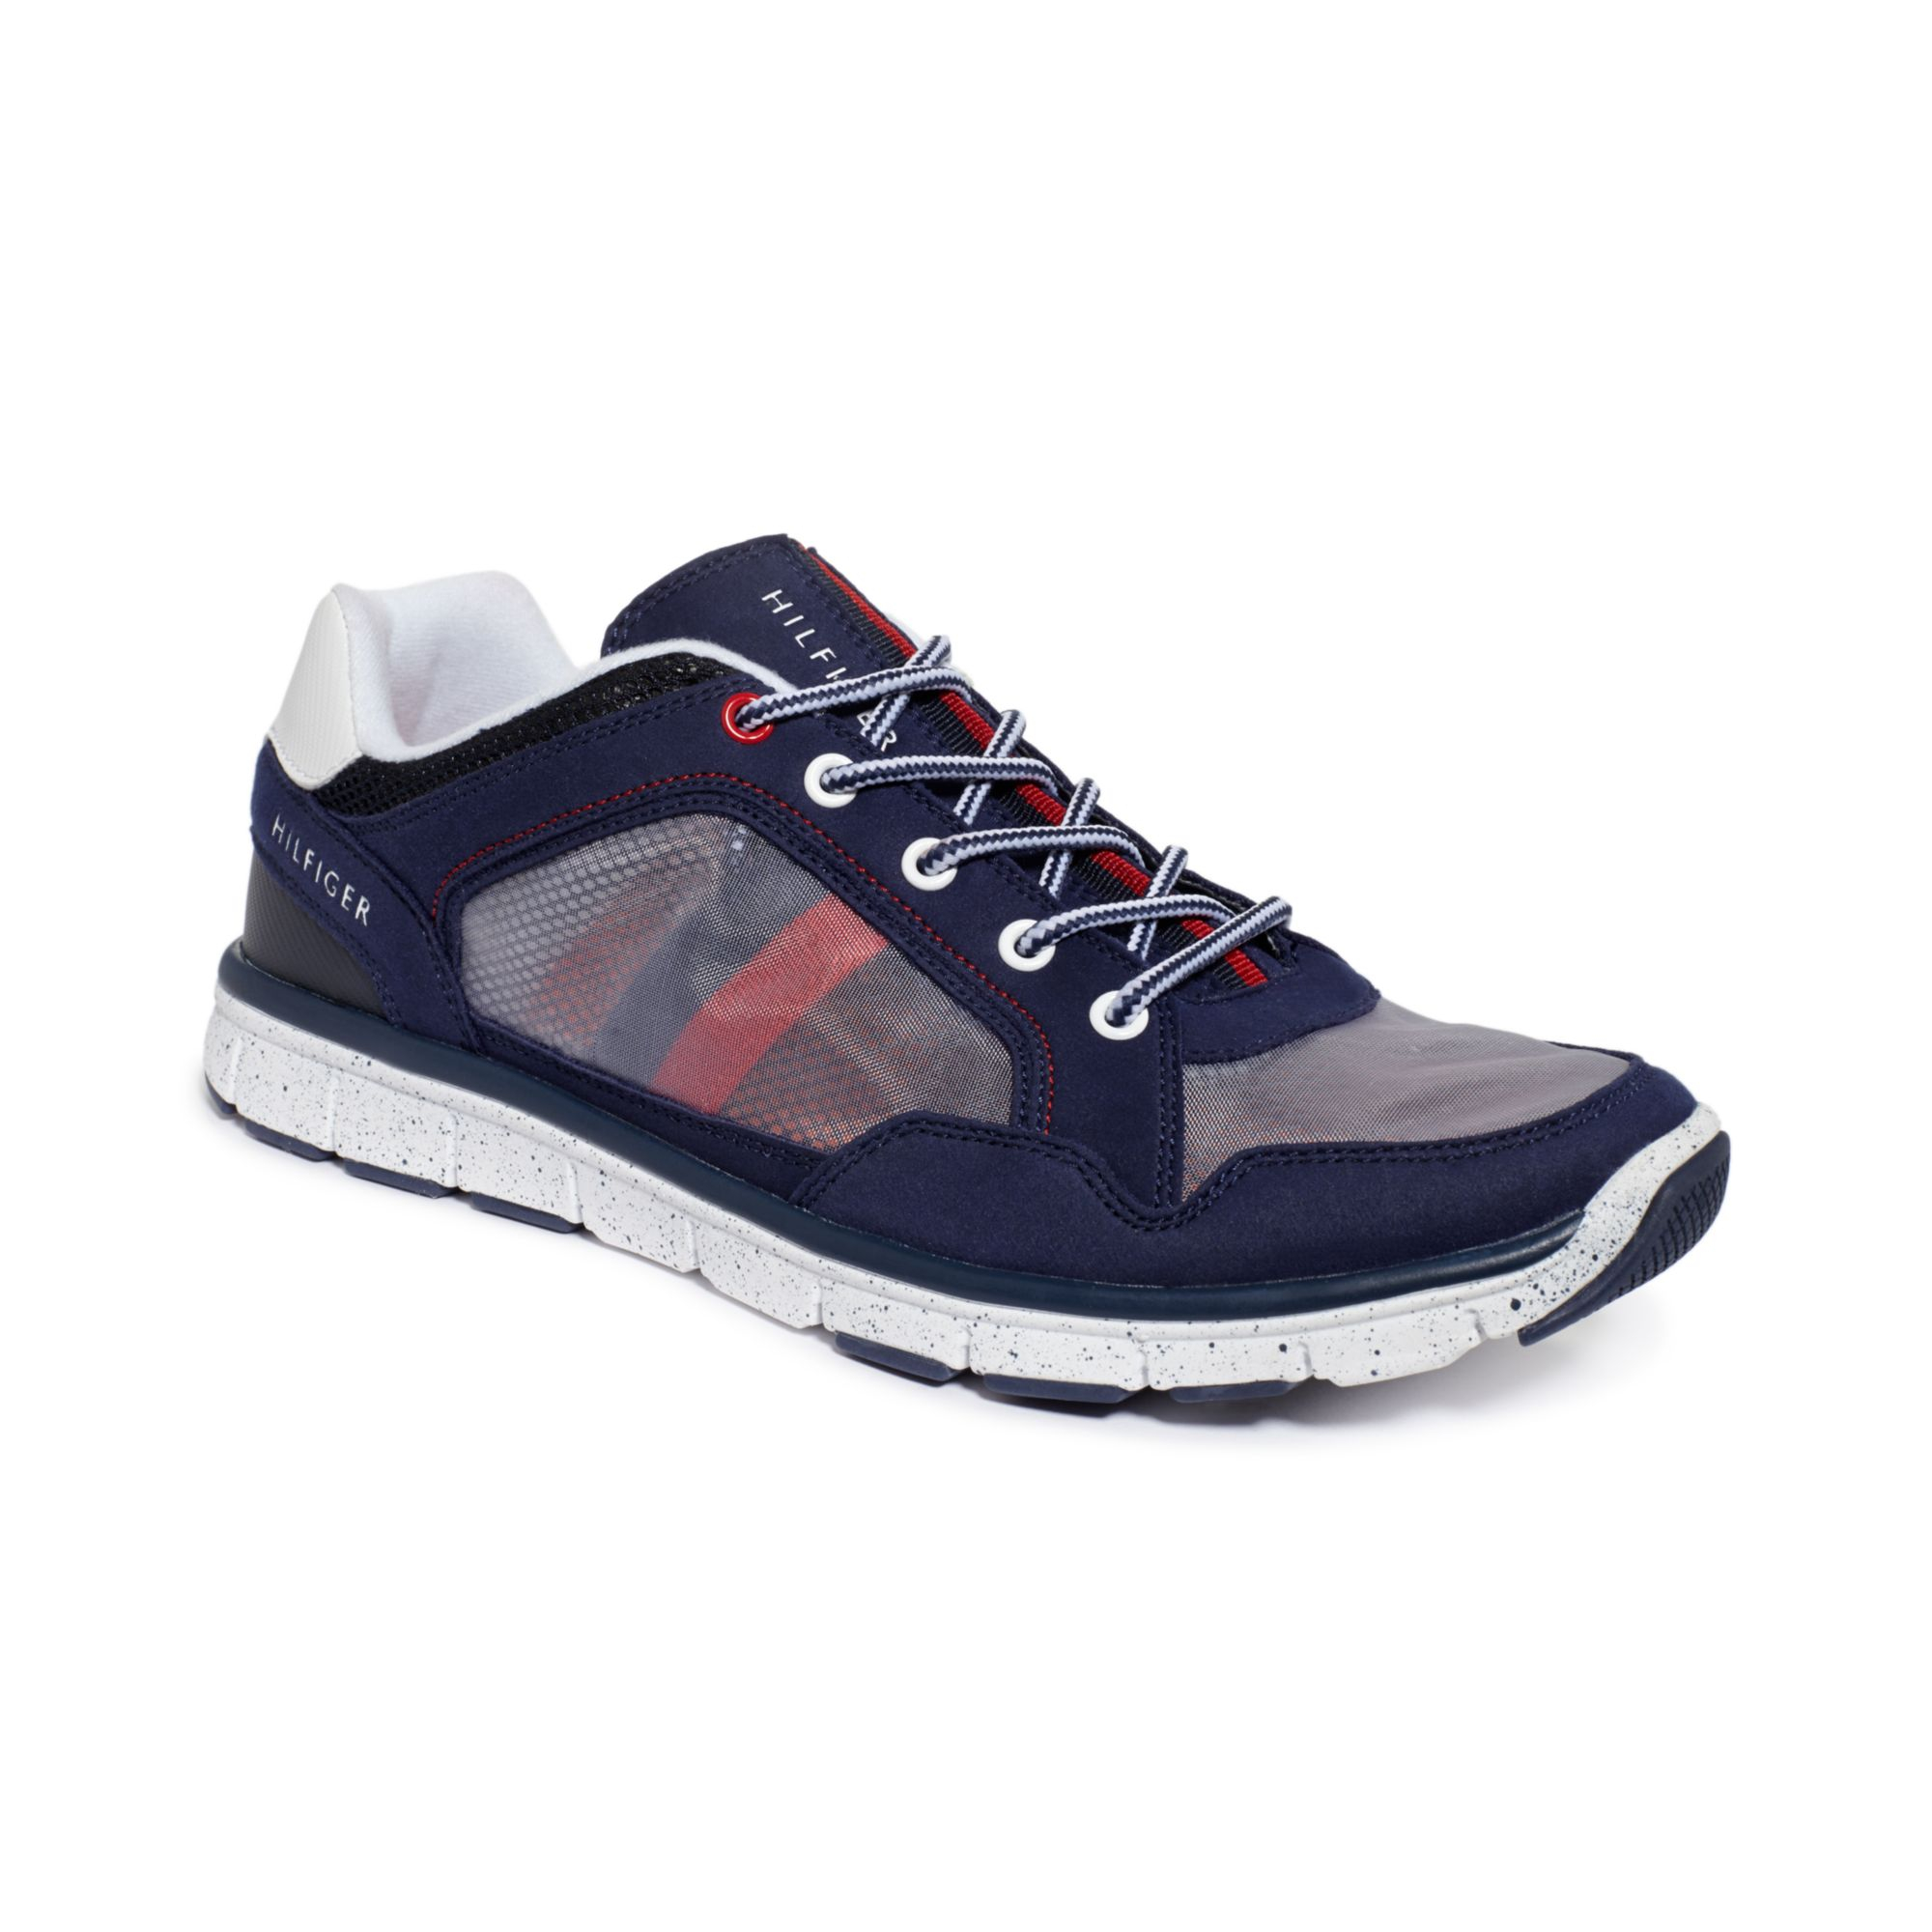 tommy hilfiger krone sneakers in blue for men navy white lyst. Black Bedroom Furniture Sets. Home Design Ideas